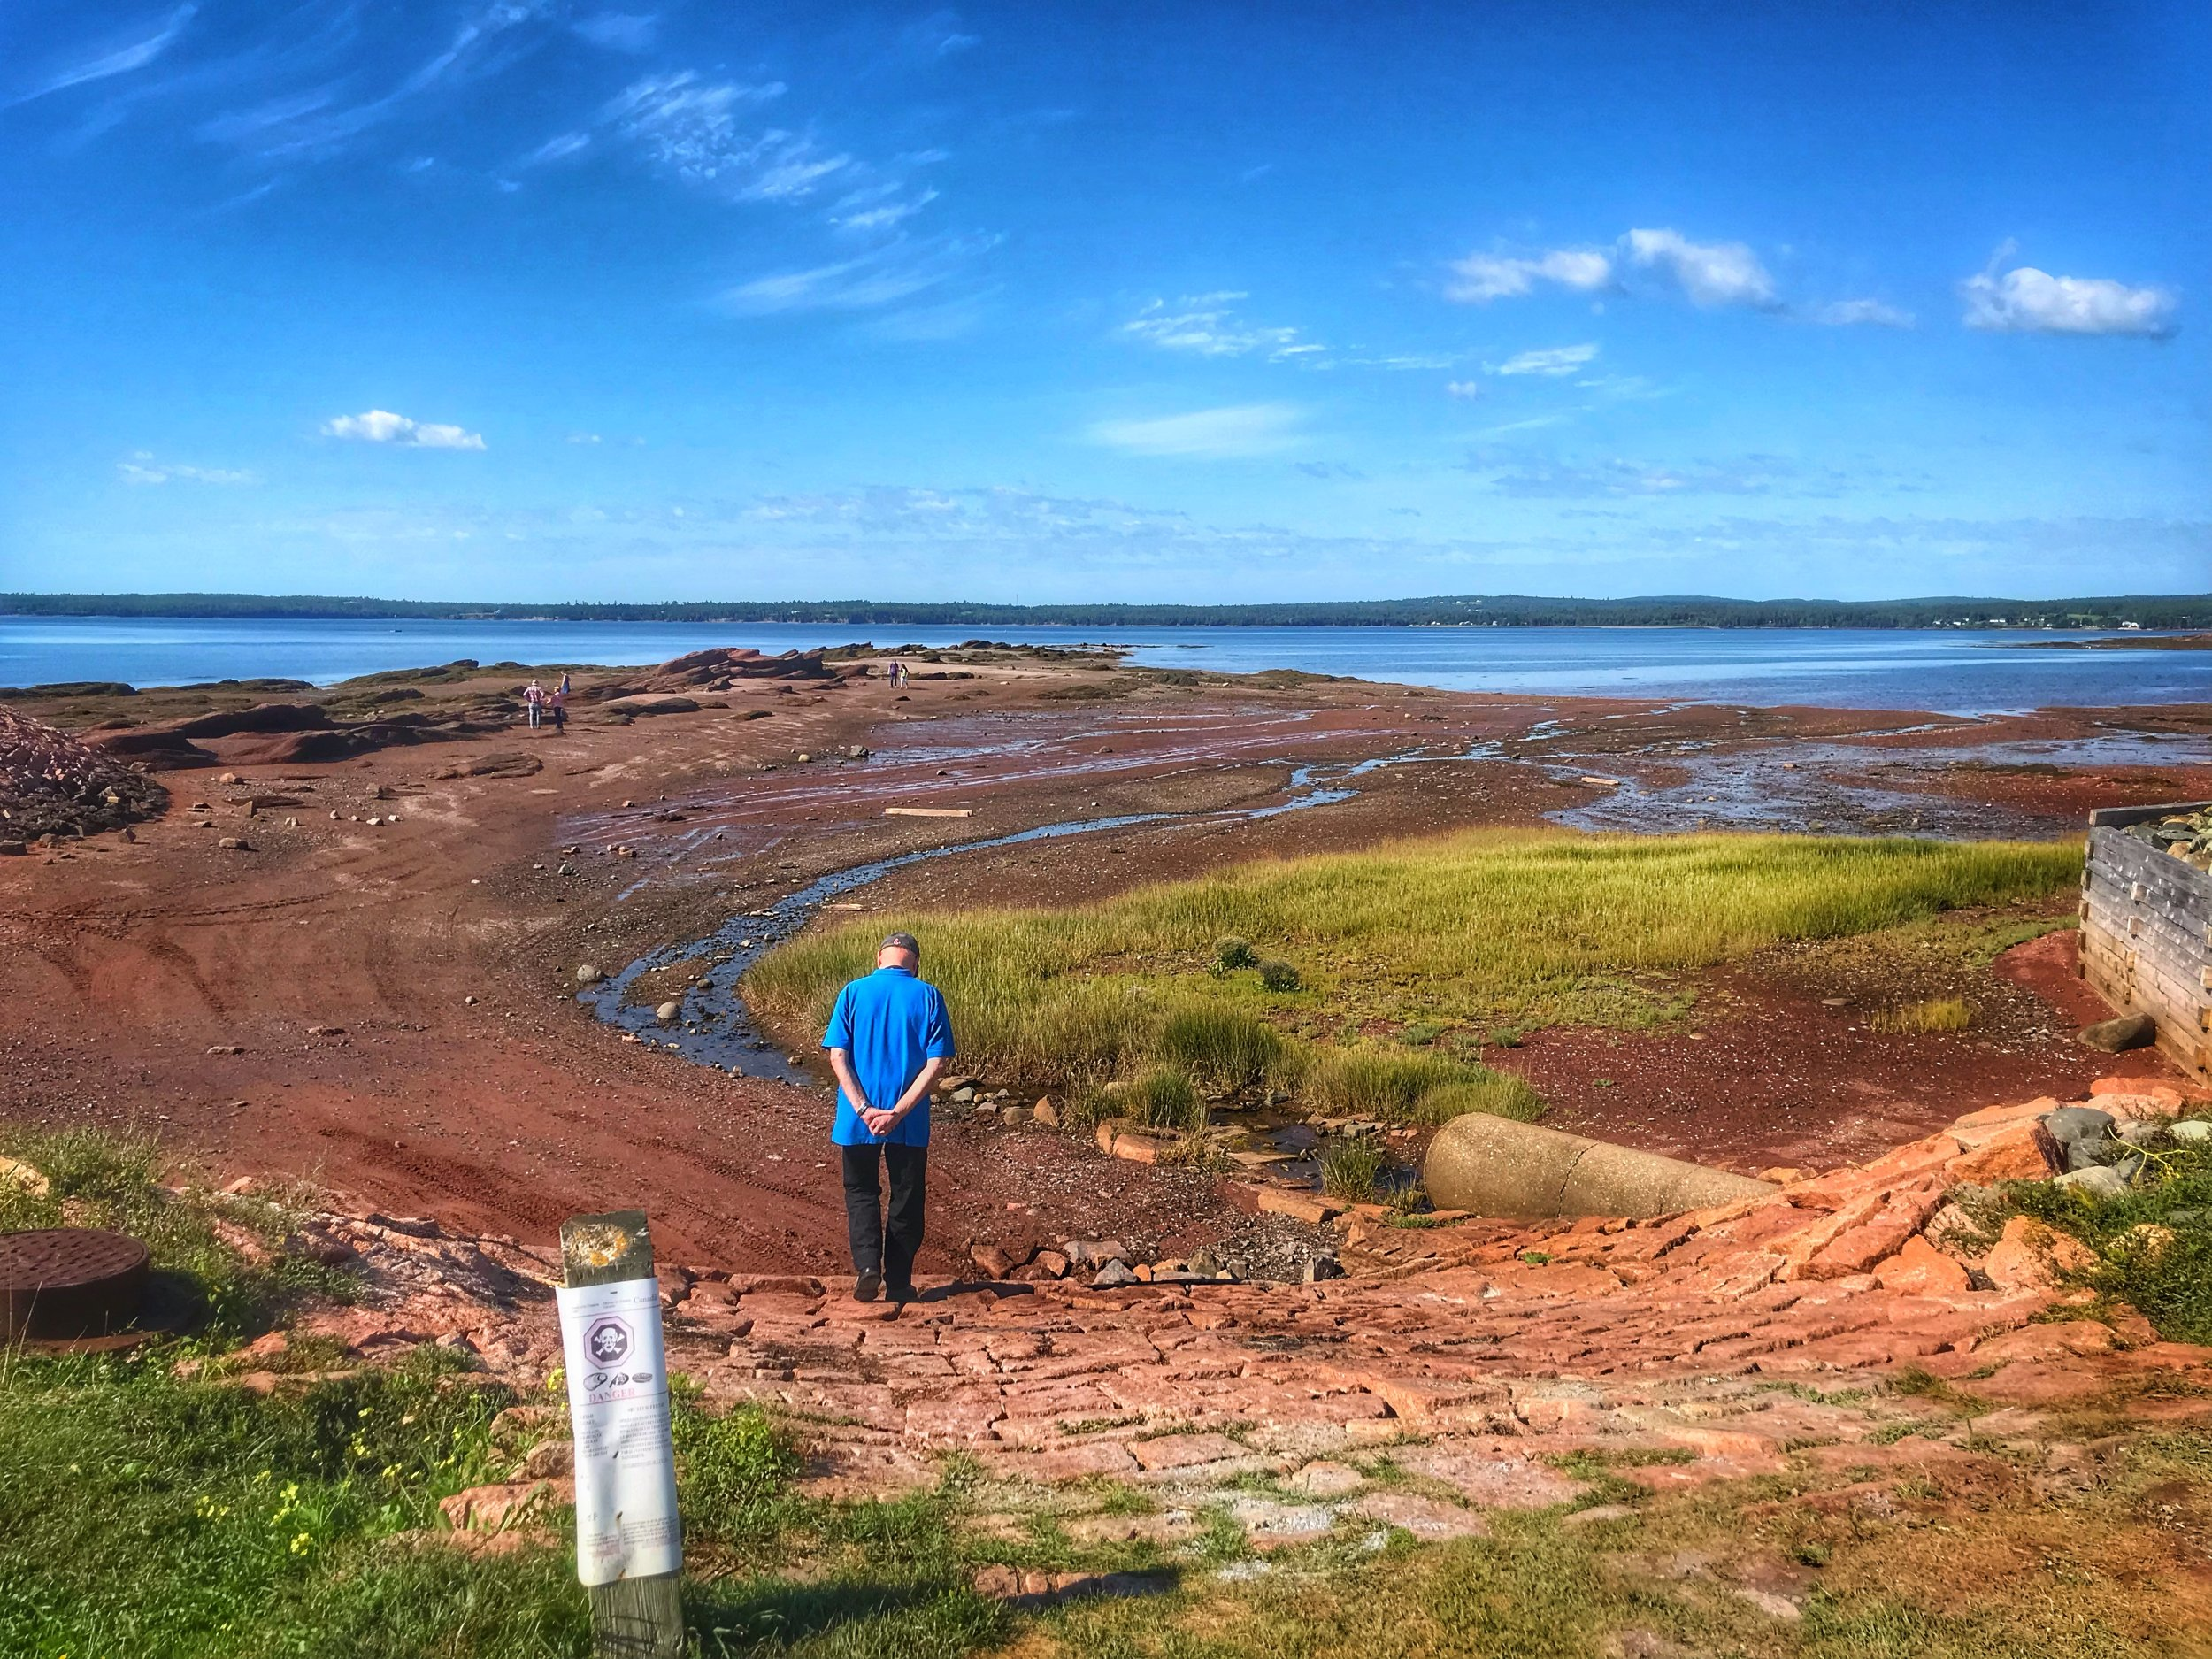 The Red beach was awesome to see. So very different from the beaches on the West Coast.